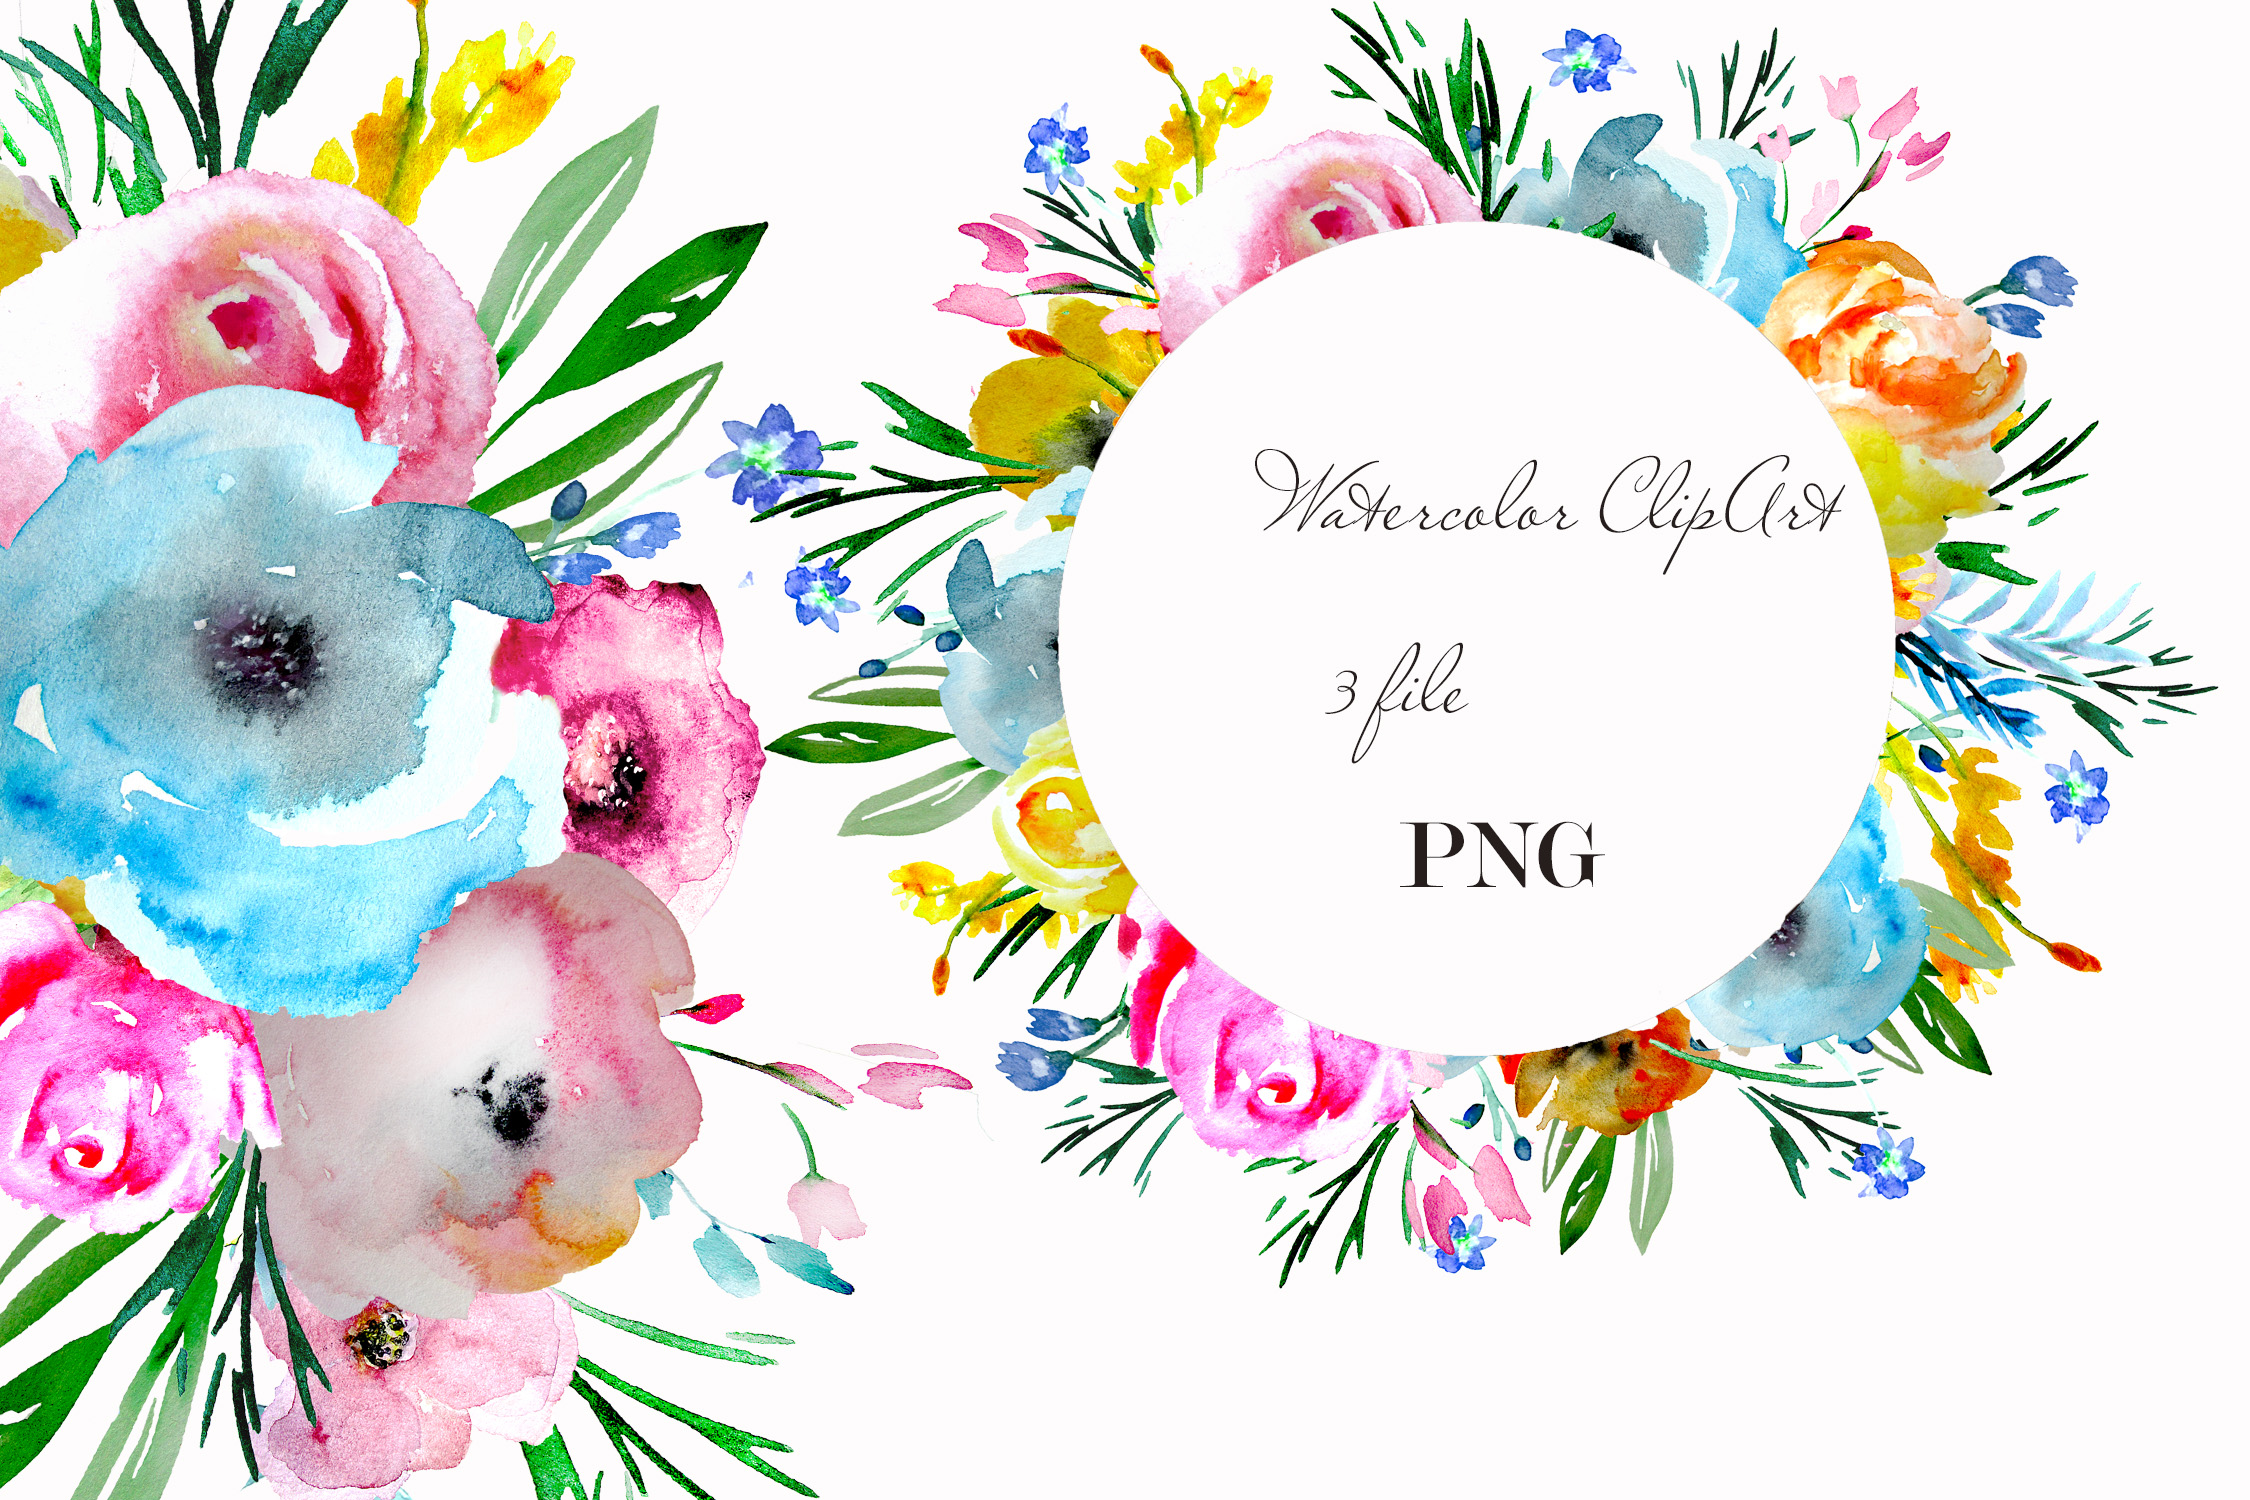 Brigt flowers watercolor clipart sprig floral desin cards example image 1